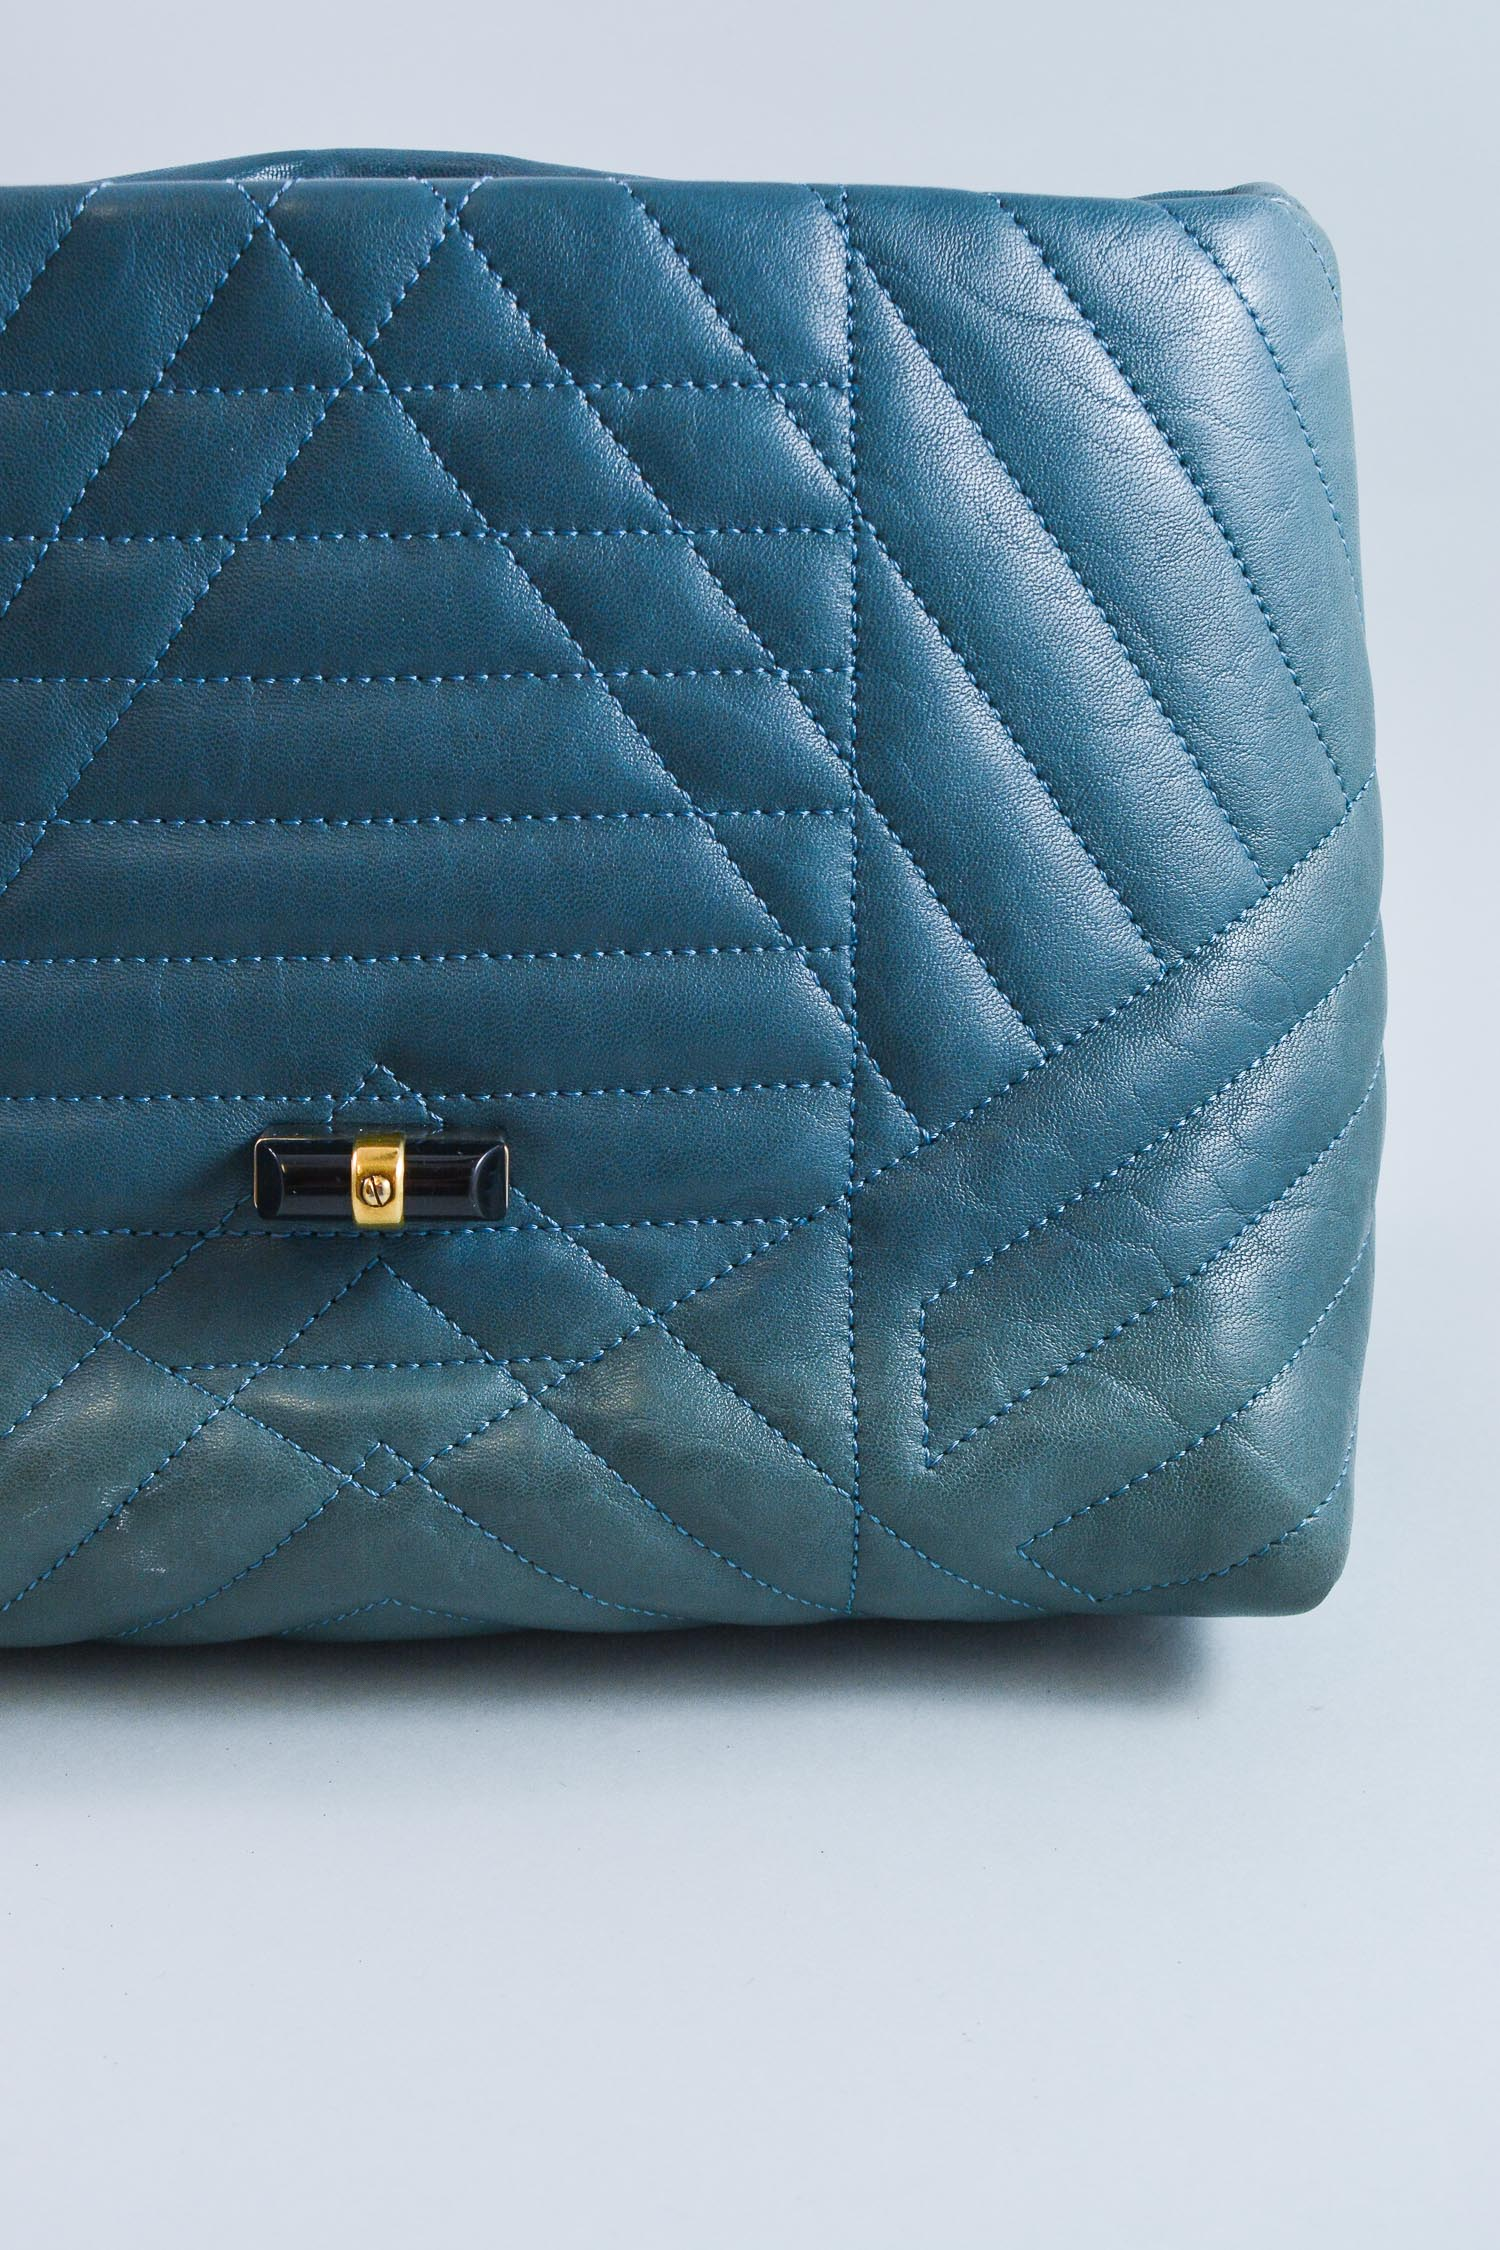 Lanvin Blue Quilted Pop Happy Leather Bag